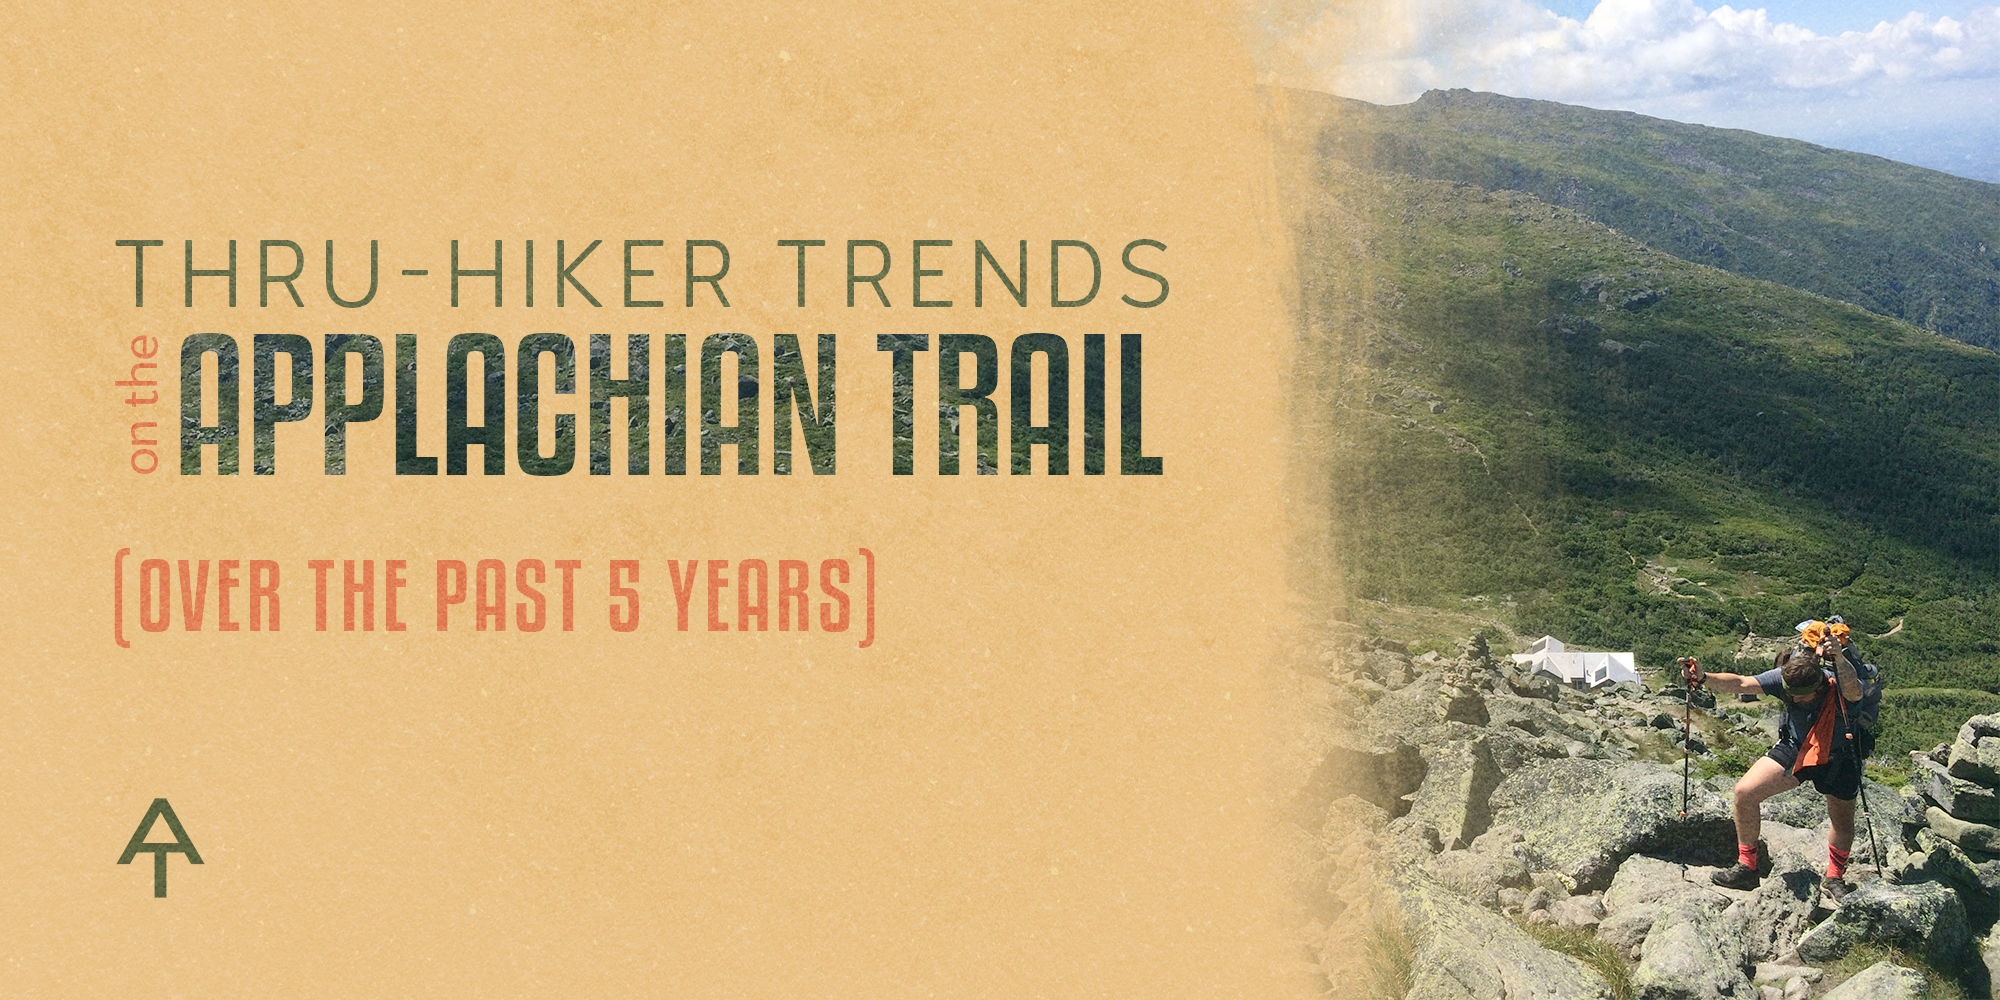 Appalachian Trail Thru-Hiker Trends: Examining Gear, Budget, and Resources Over the Past 5 Years - The Trek